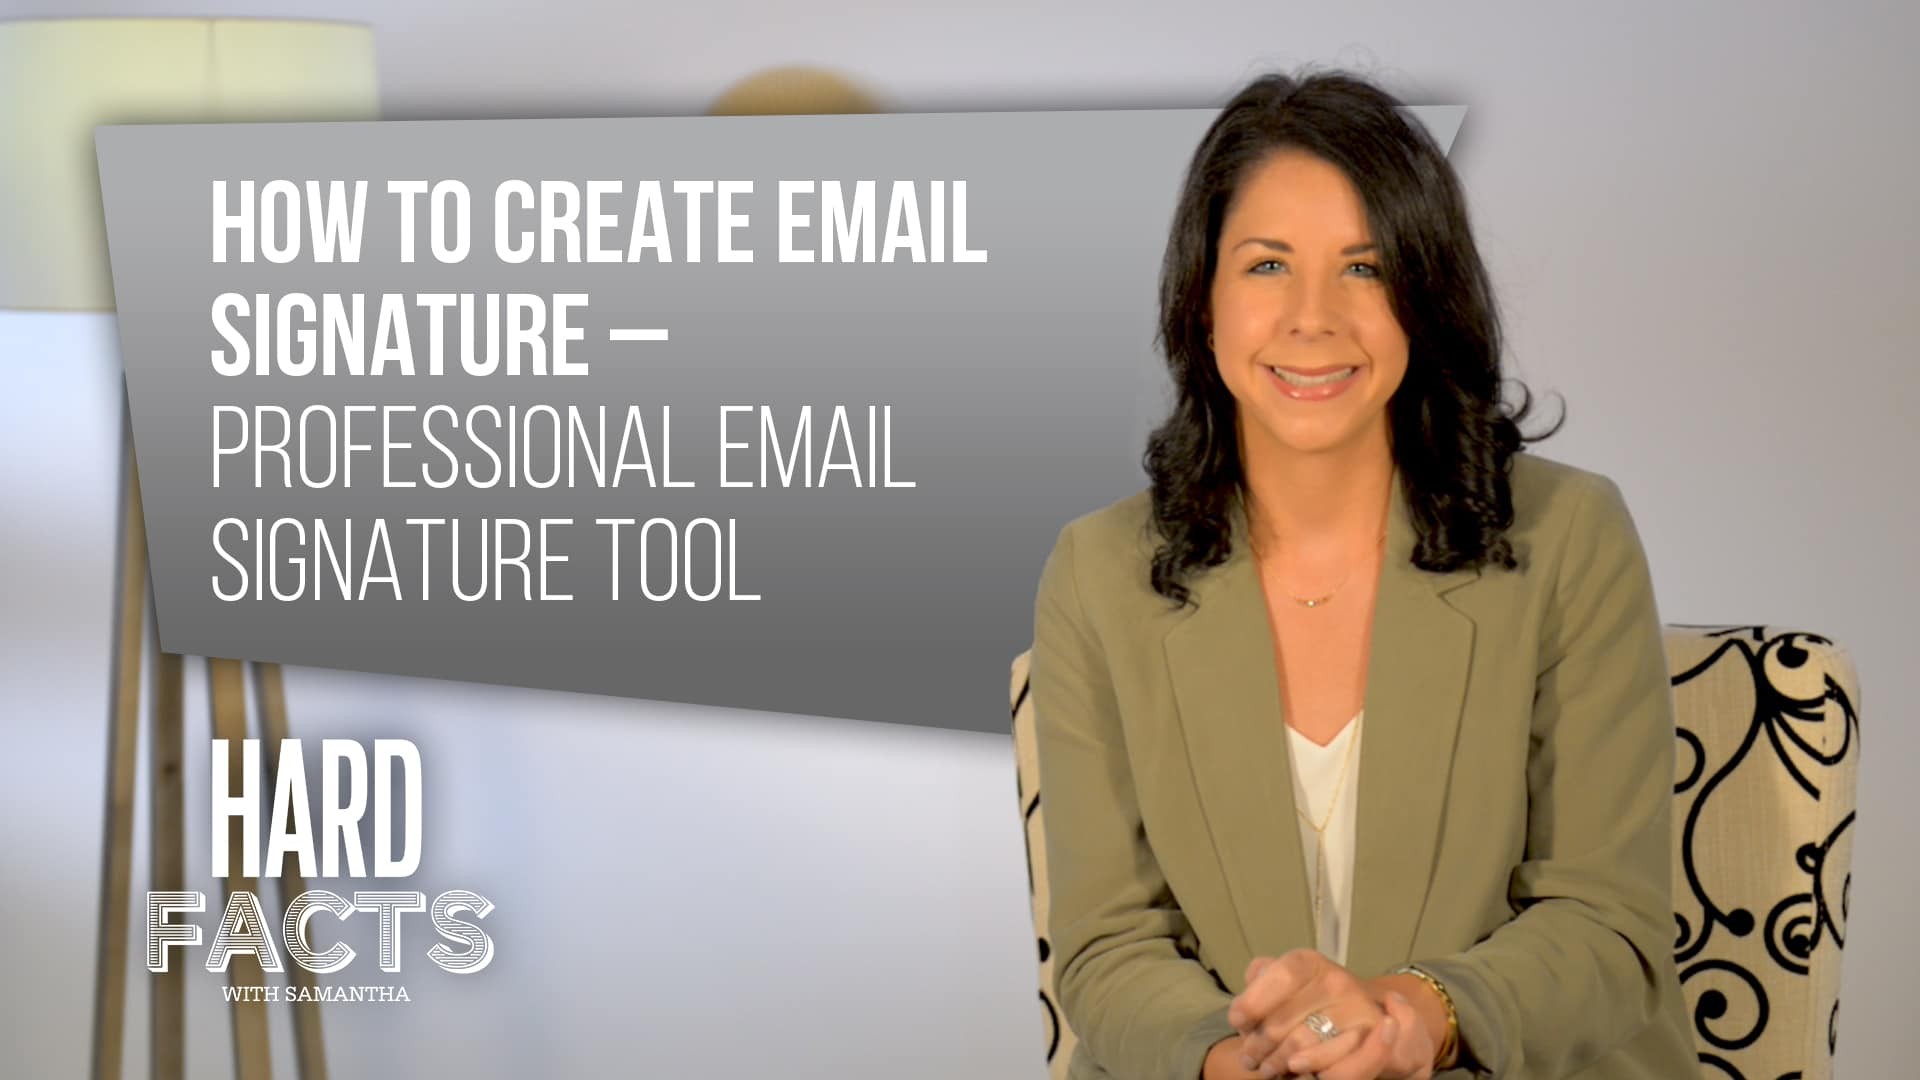 How To Create Email Signature – Professional Email Signature Tool